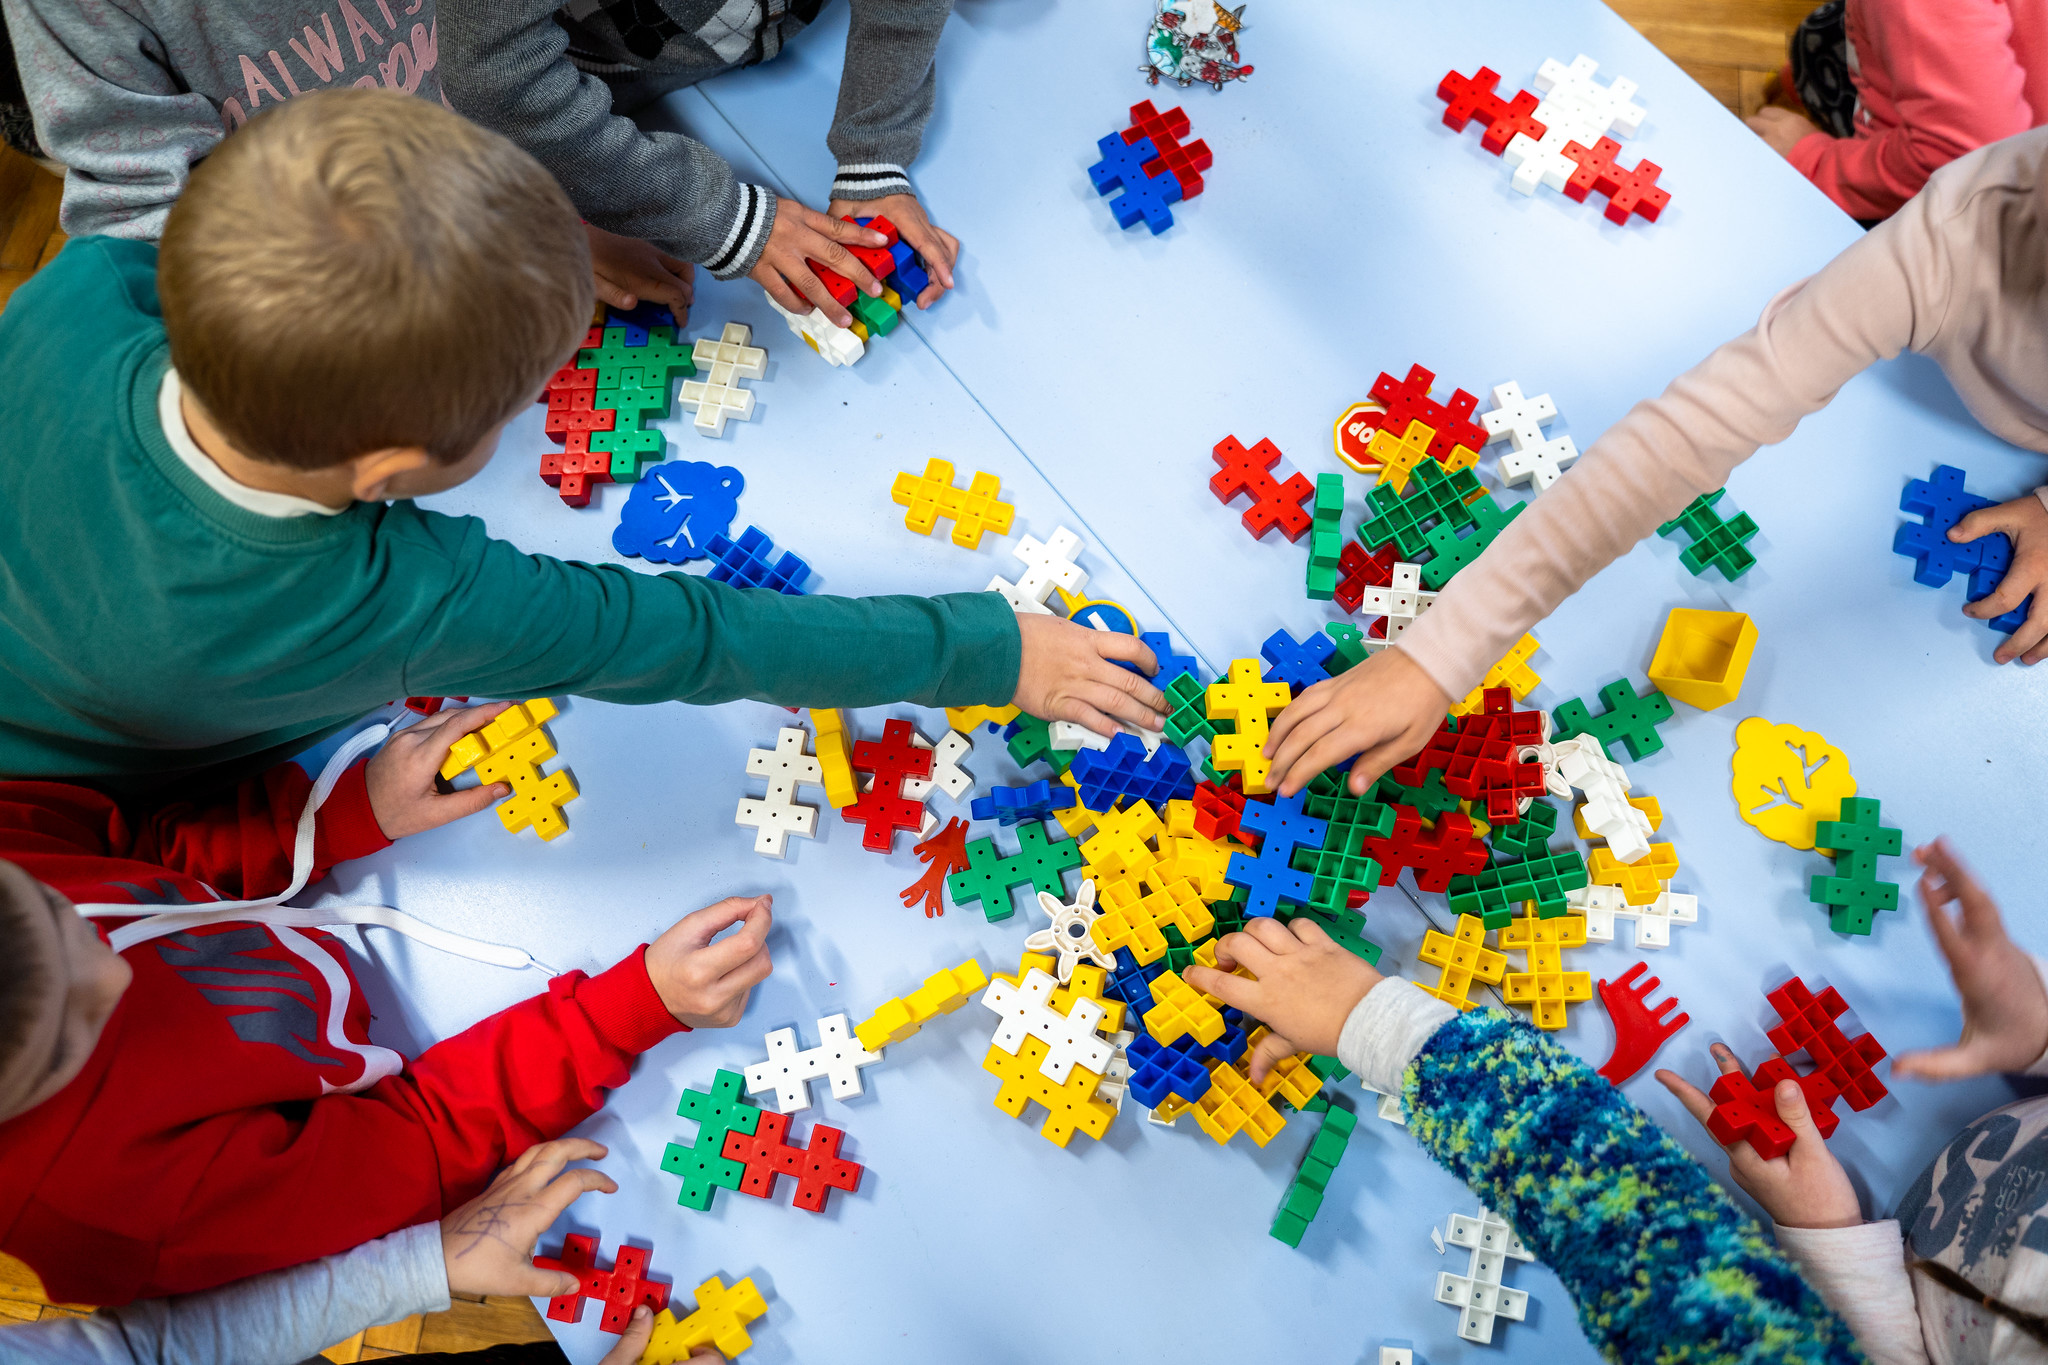 Panelists during Davos 2021 concluded that we need less much less focus on knowledge retention during early years.